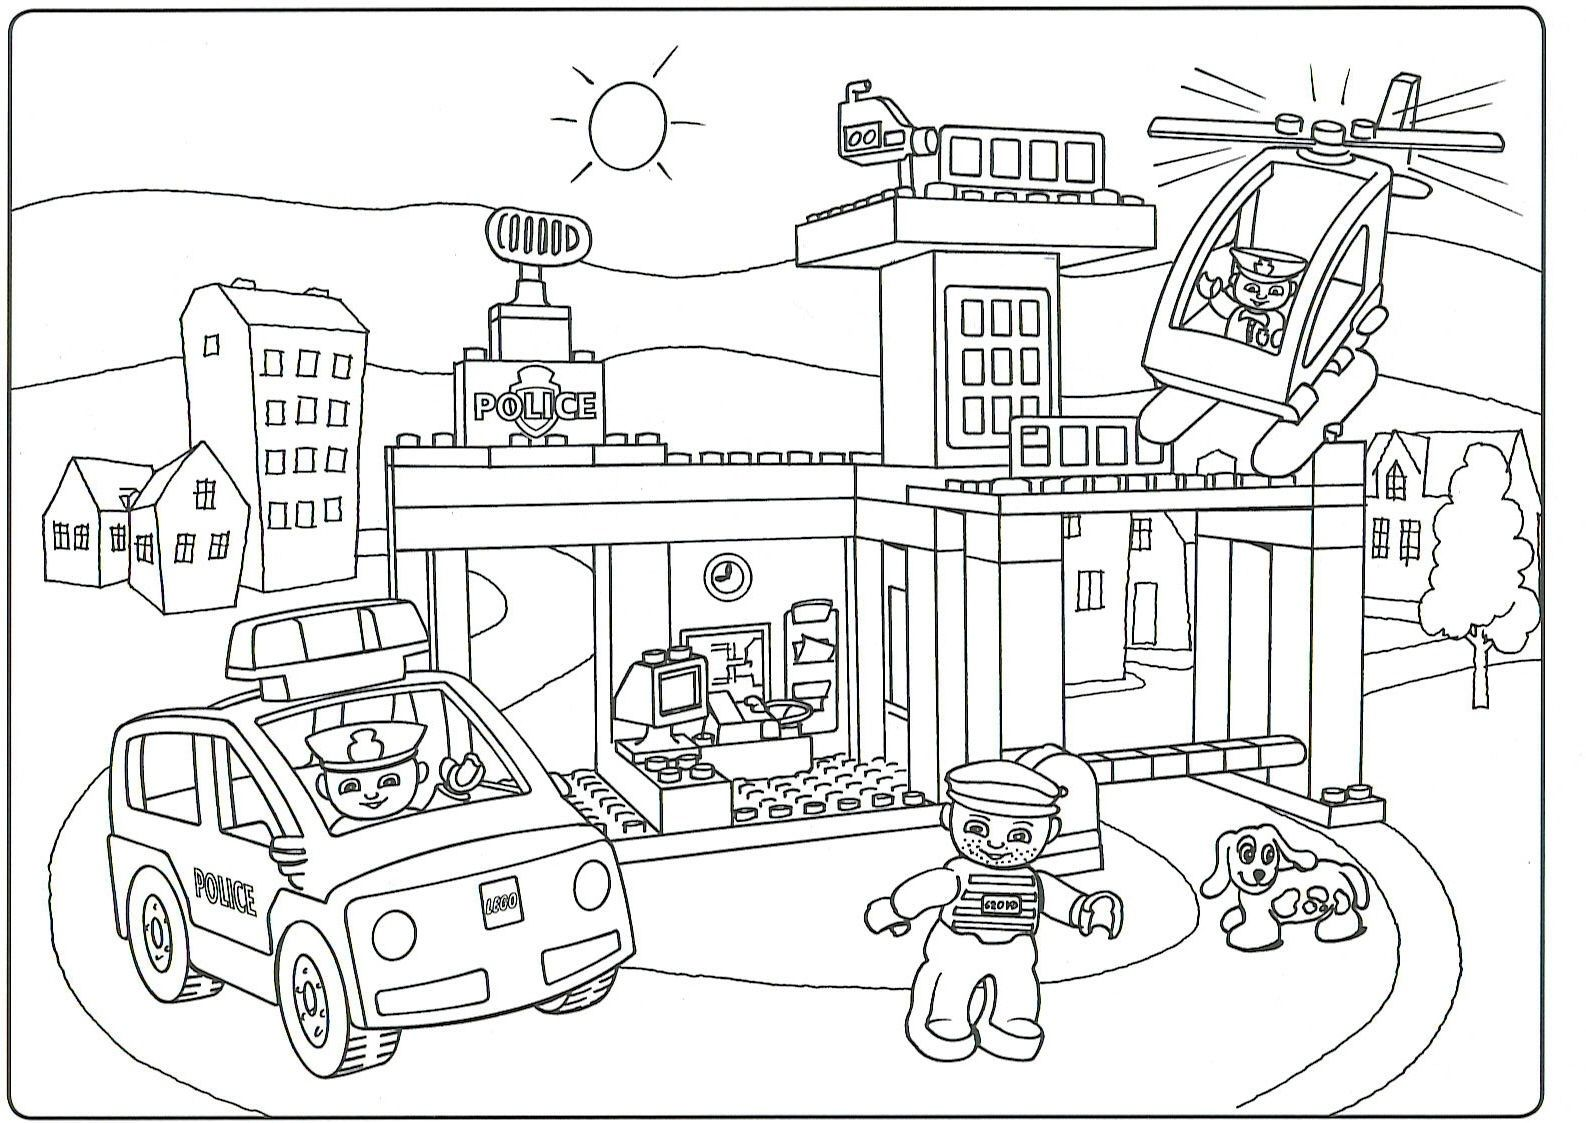 Police Station Coloring Pages Gallery Lego Coloring Pages Truck Coloring Pages Lego Coloring